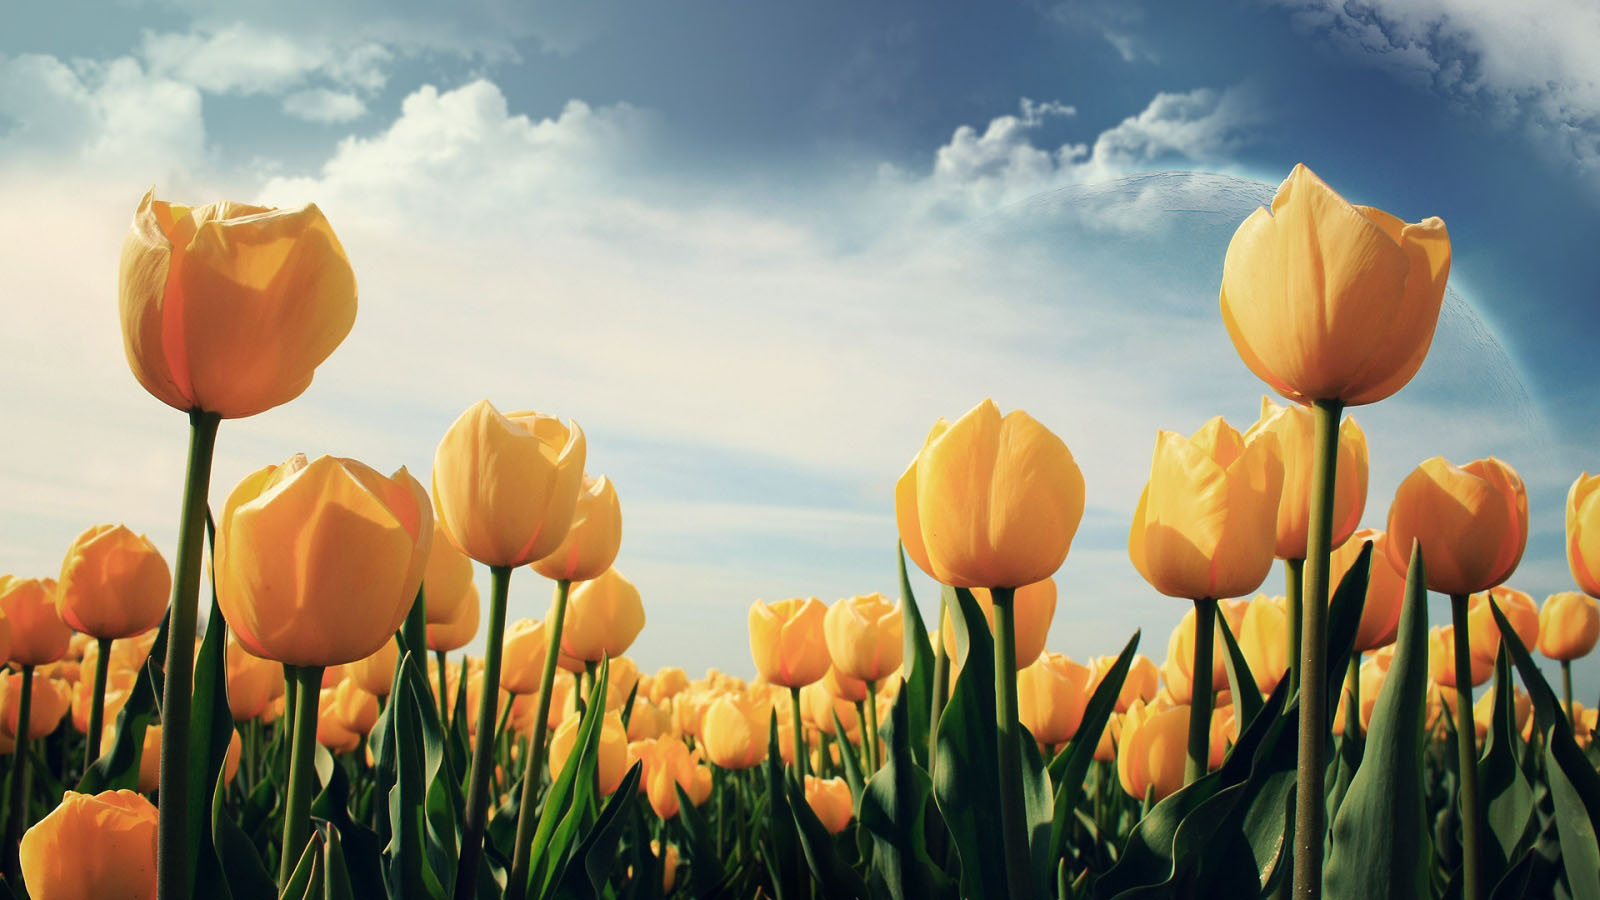 Yellow tulips flower wallpaper responsive size 1024 x 576 yellow tulips flower wallpaper mightylinksfo